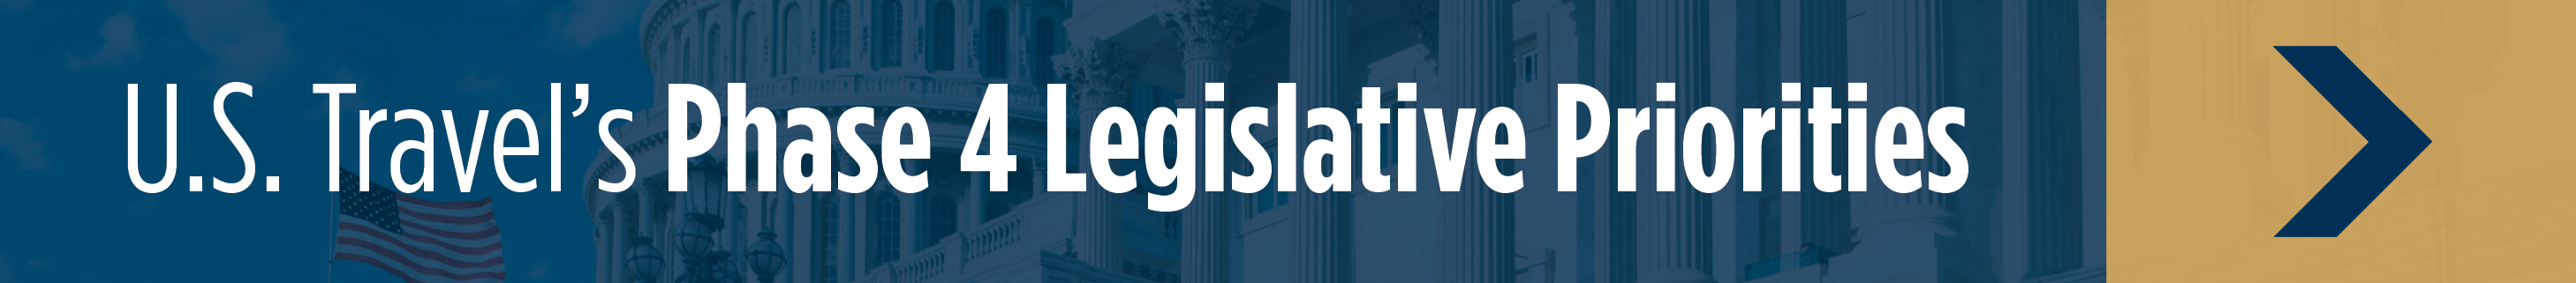 U.S. Travel's Phase 4 Legislative Priorities